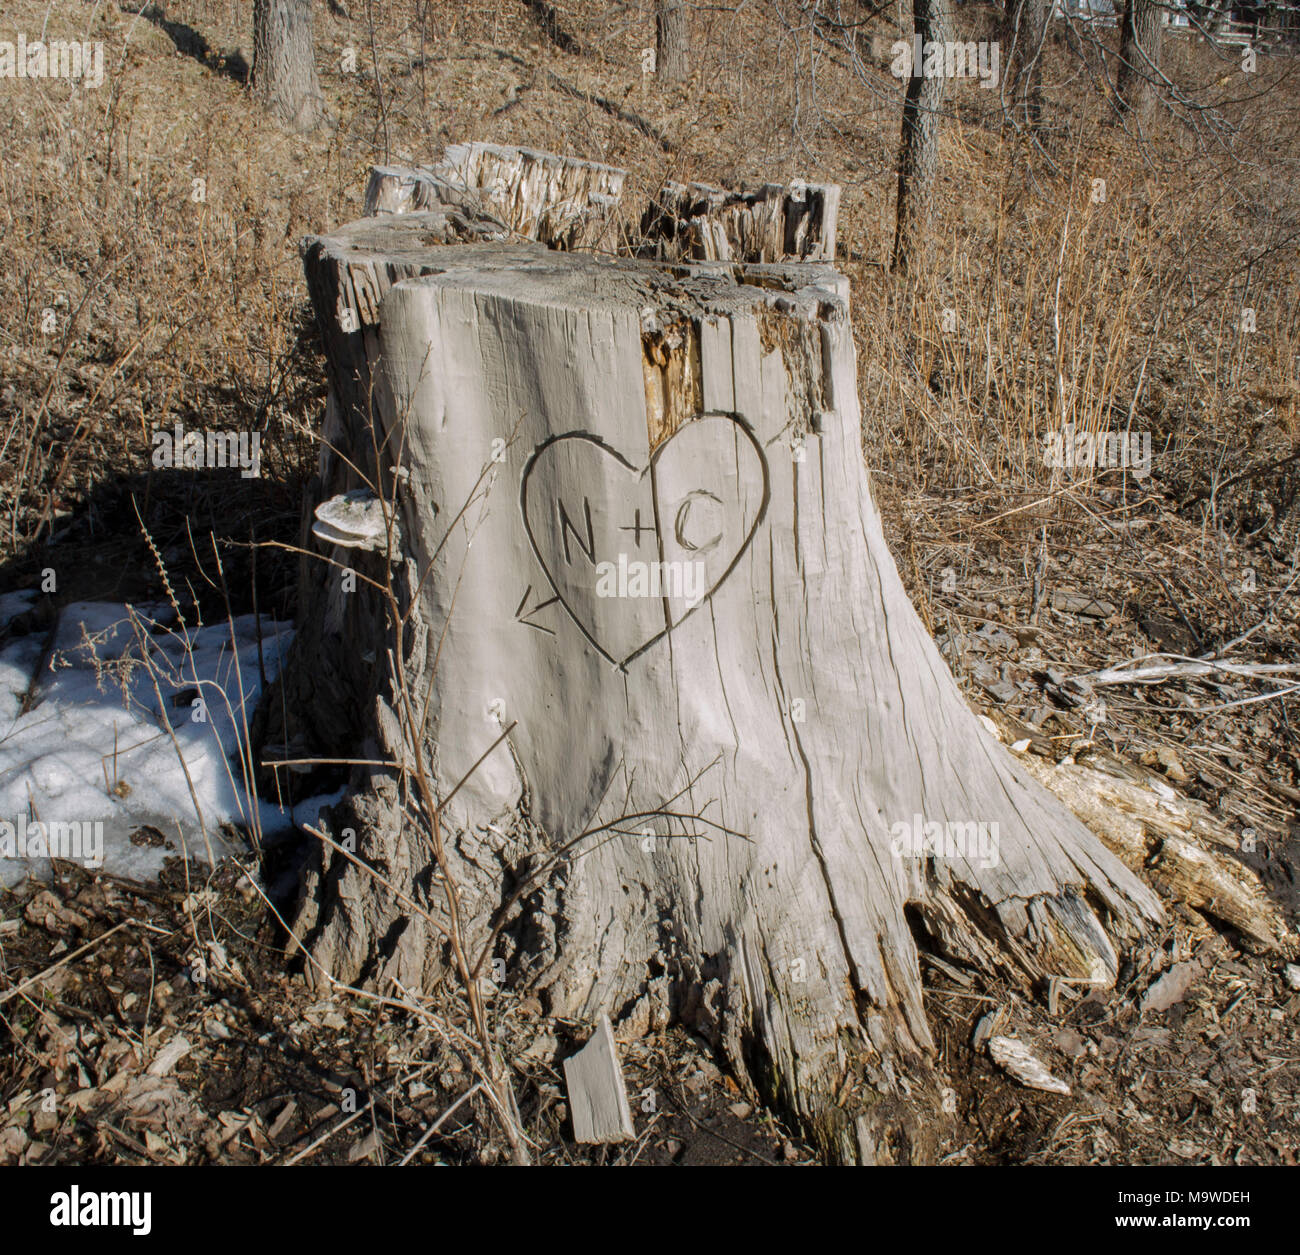 Dead Stump with N+C Carved into it - Stock Image